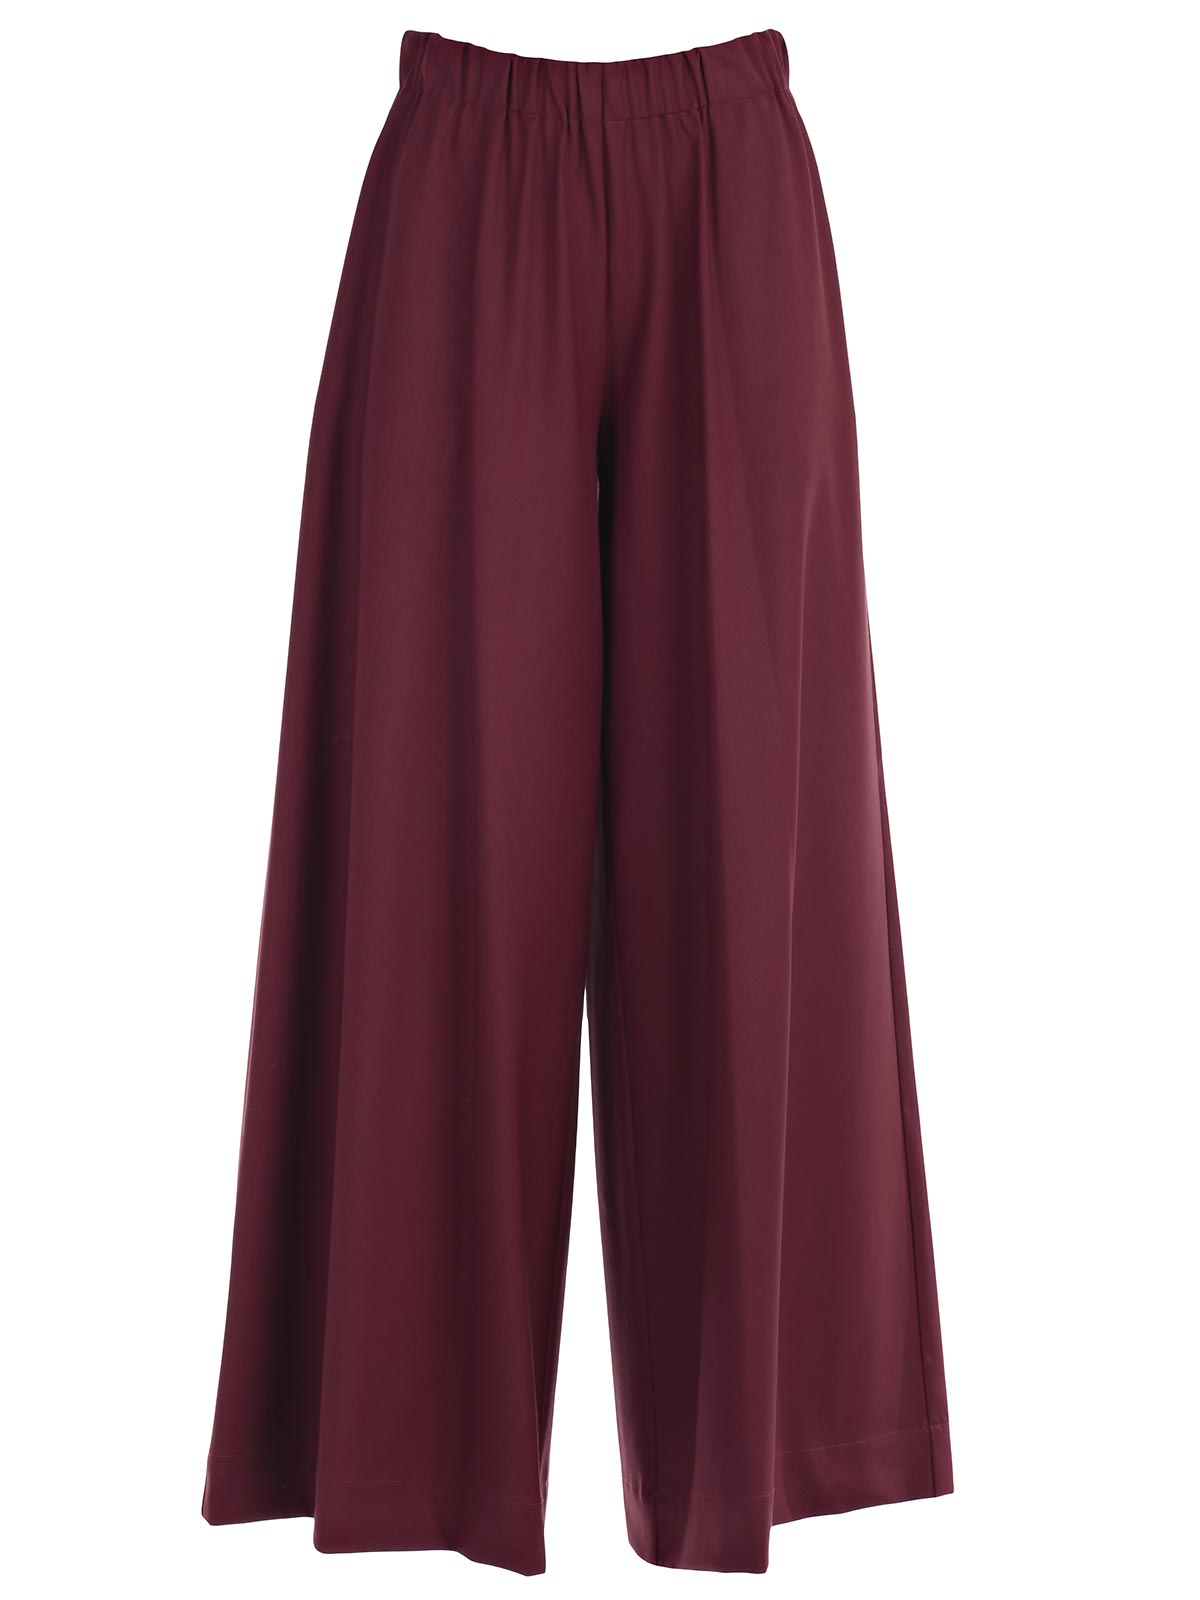 Picture of ERIKA CAVALLINI TROUSERS